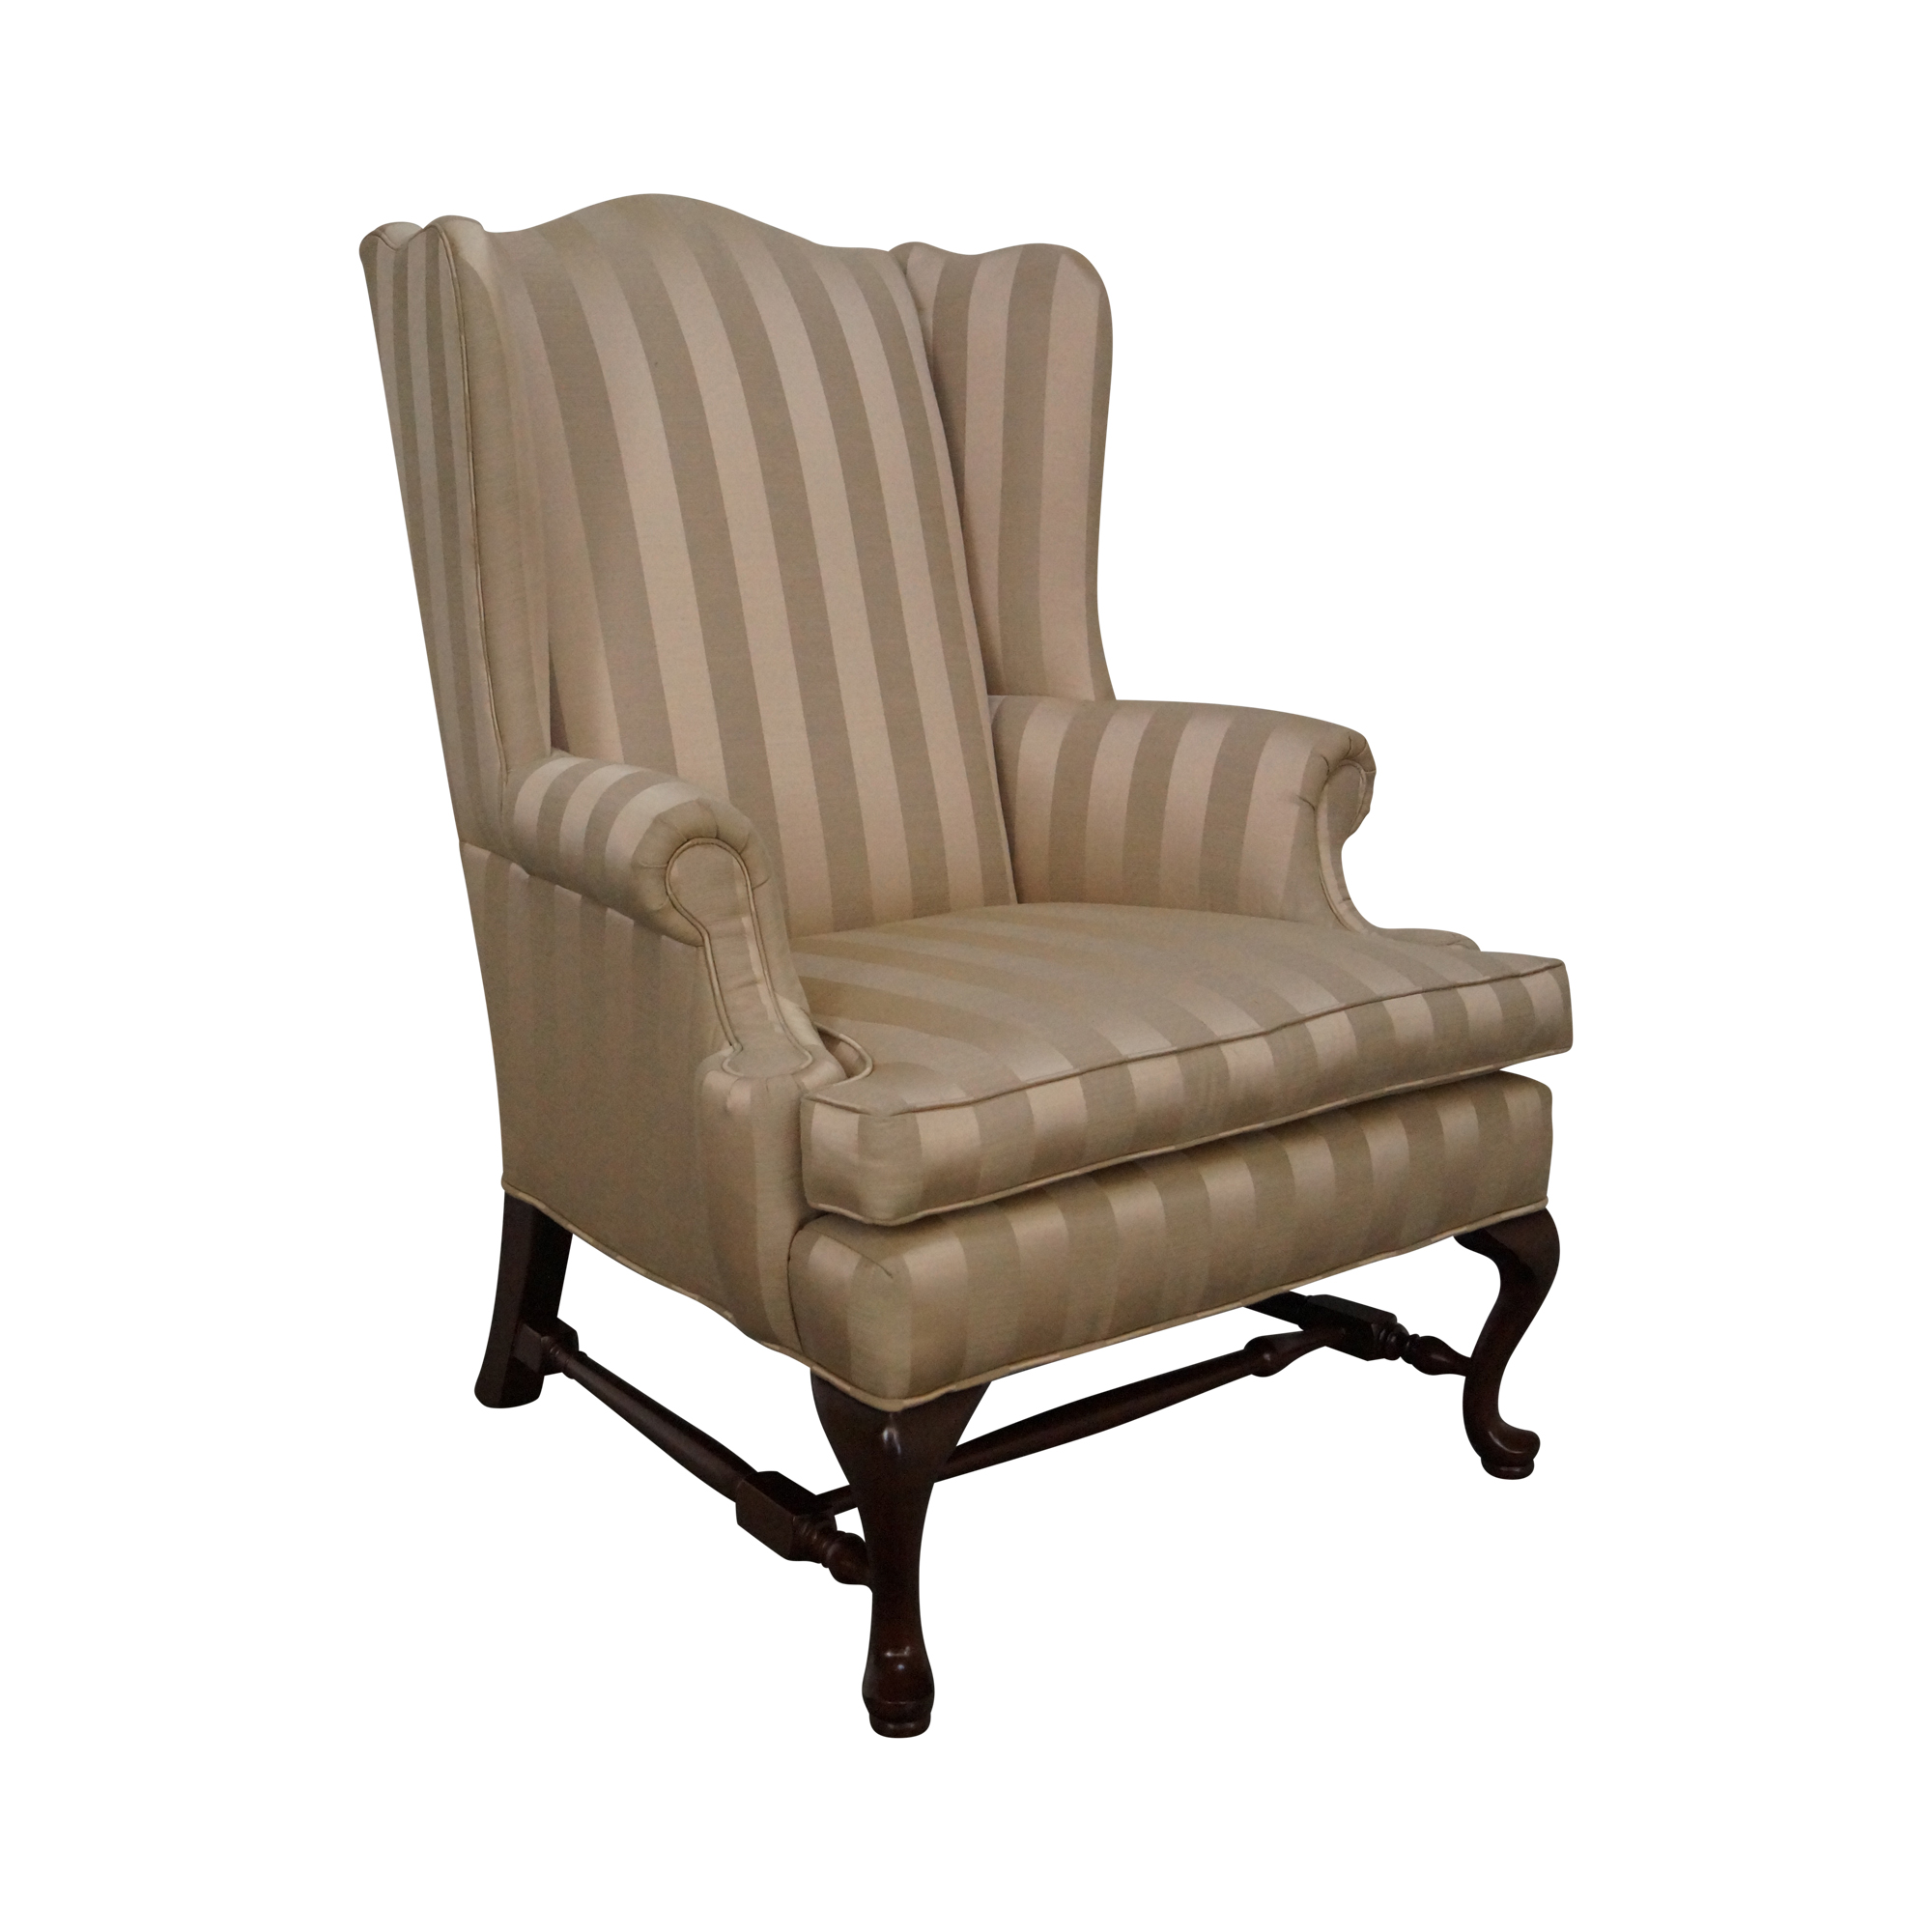 Ethan Allen Queen Anne Wingback Chair  Chairish. Traditional Kitchens. Contemporary Metal Wall Art. Covered Decks. Bona Traffic. Fancy Bench. Galaxy Granite. Samuel And Sons. Bulova Table Clock